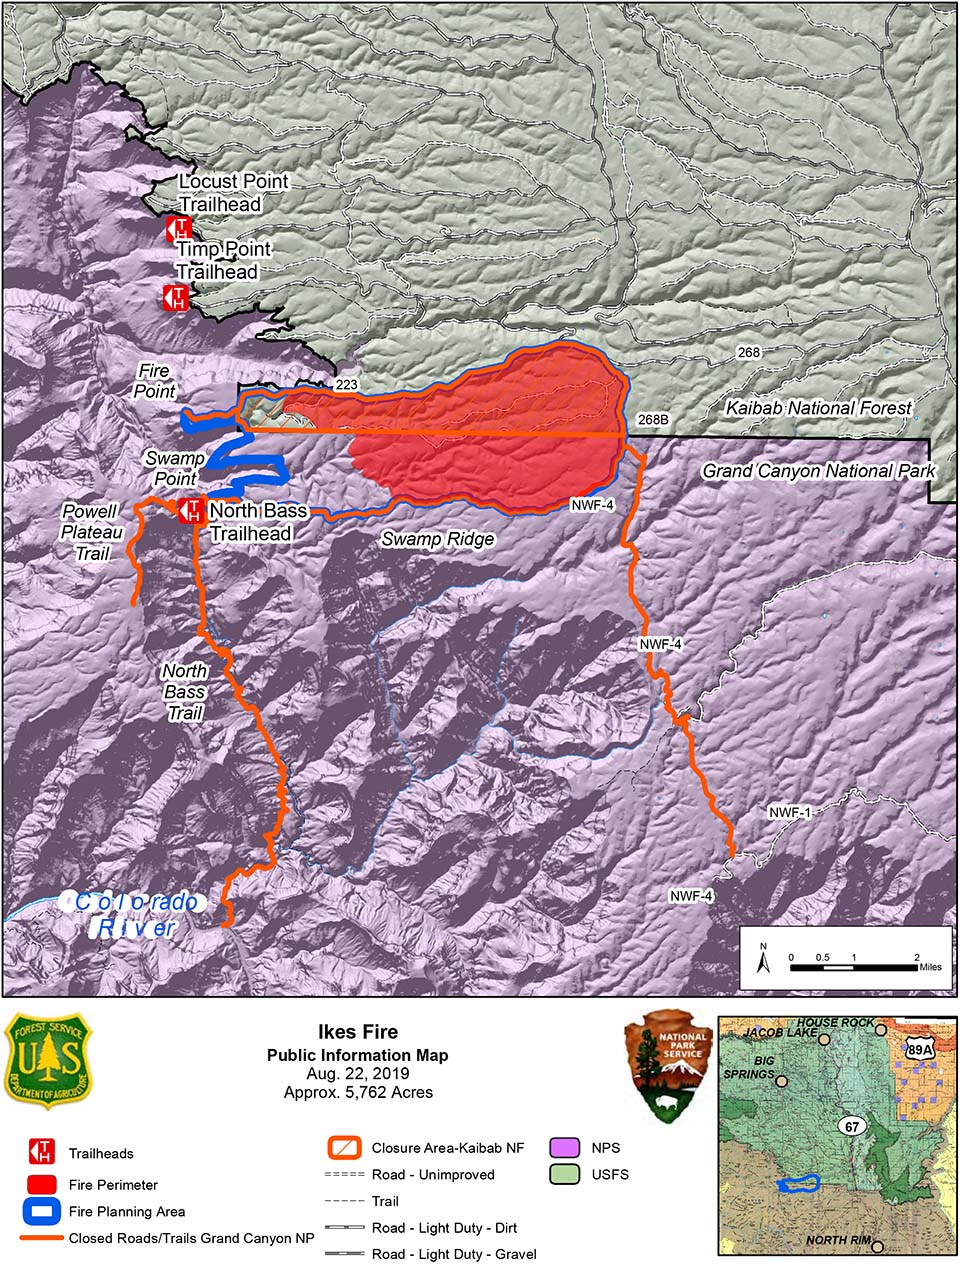 Map showing the Ikes Fire containment area and temporary road and trail closures in relation to the north side of Grand Canyon National Park in its boundary with Kaibab Nat. Forest.